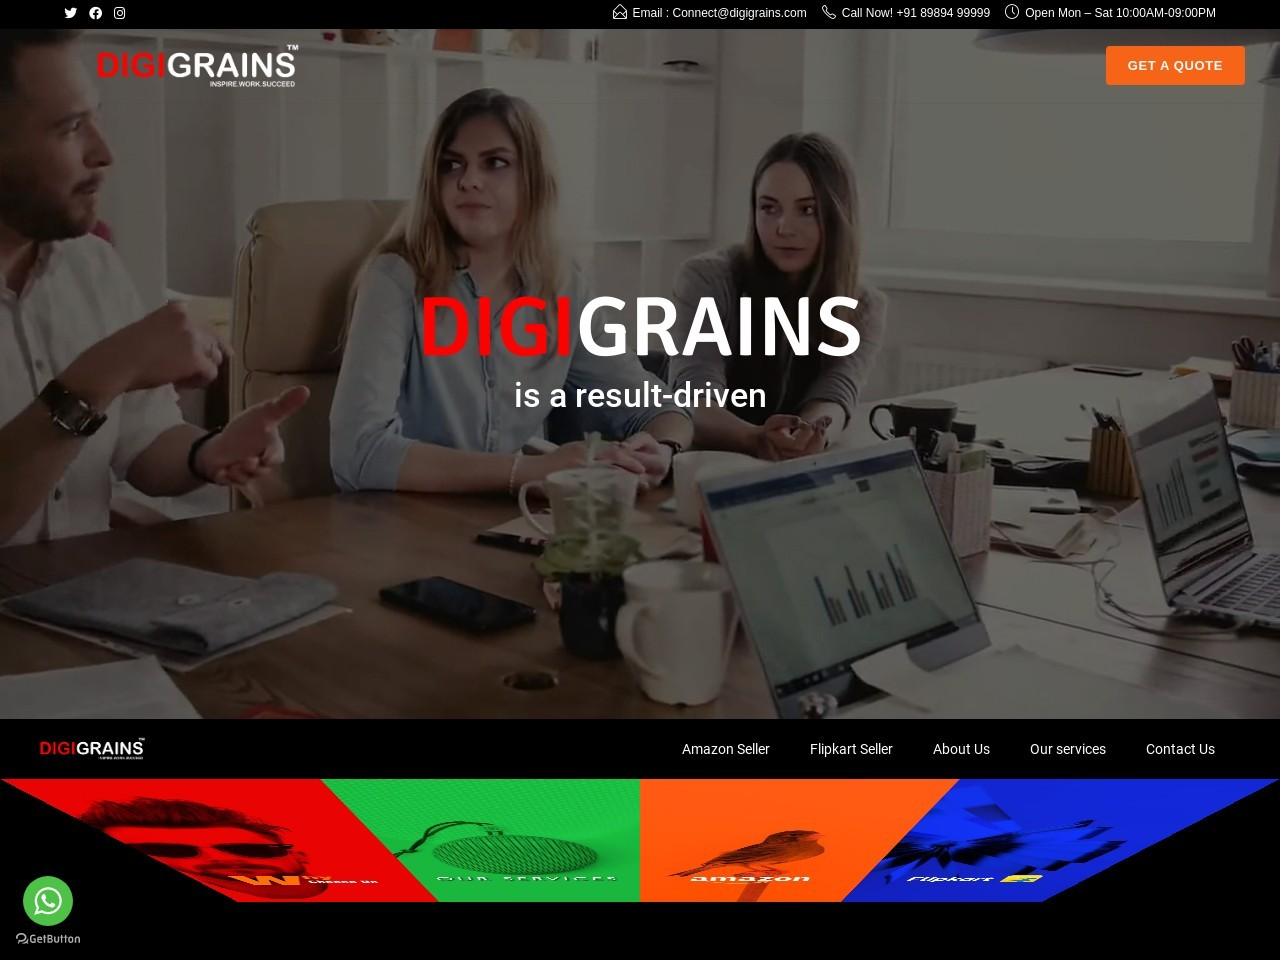 Digigrains Services-Best Digital Marketing, E-Commerce Company In India